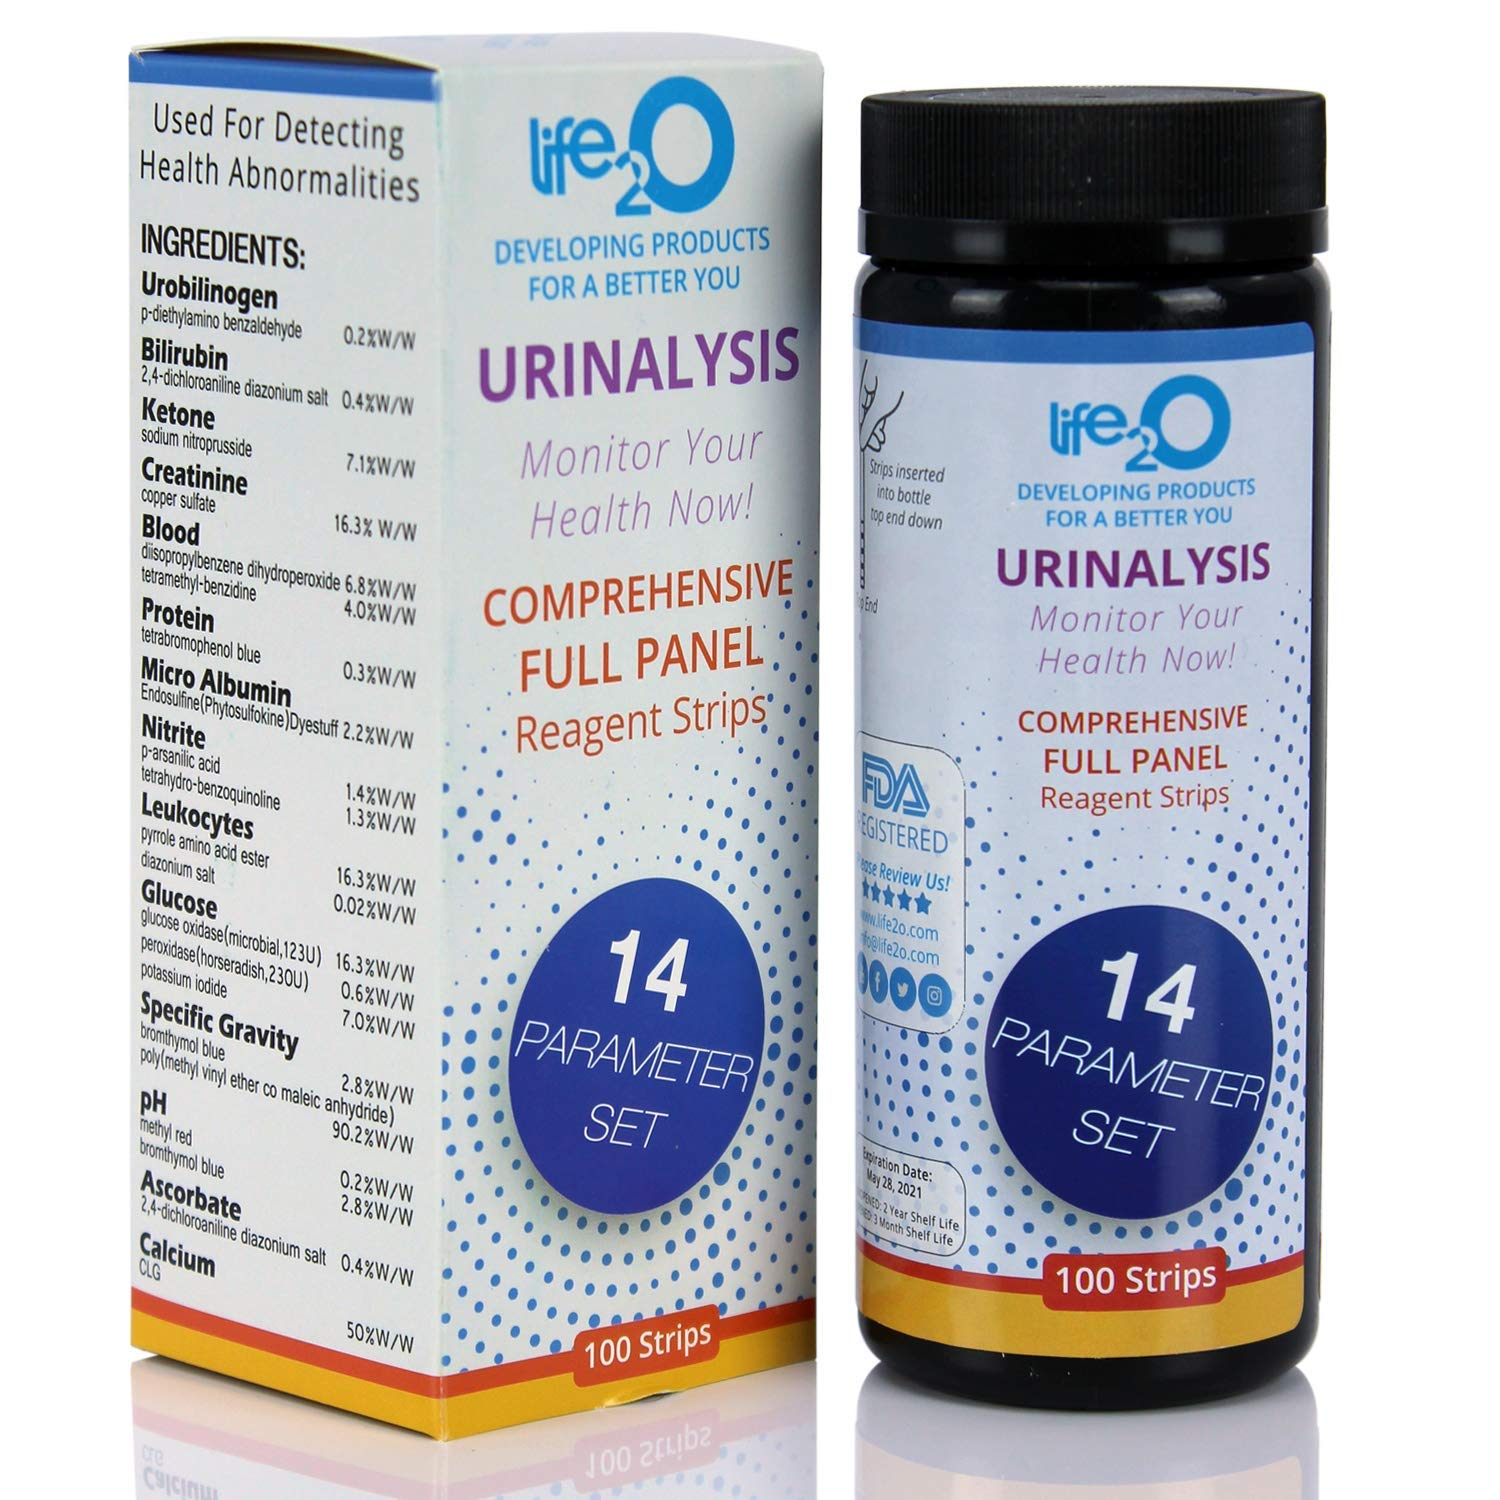 Comprehensive 14-in-1 Urine Test Strips 100ct | Urinalysis Dip-Stick Testing Kit | Ketone, pH, Blood, UTI, Protein | Keto Alkaline Diet, Ketosis, Kidney Infection & Liver Function | Free e-Book Inside by life2O